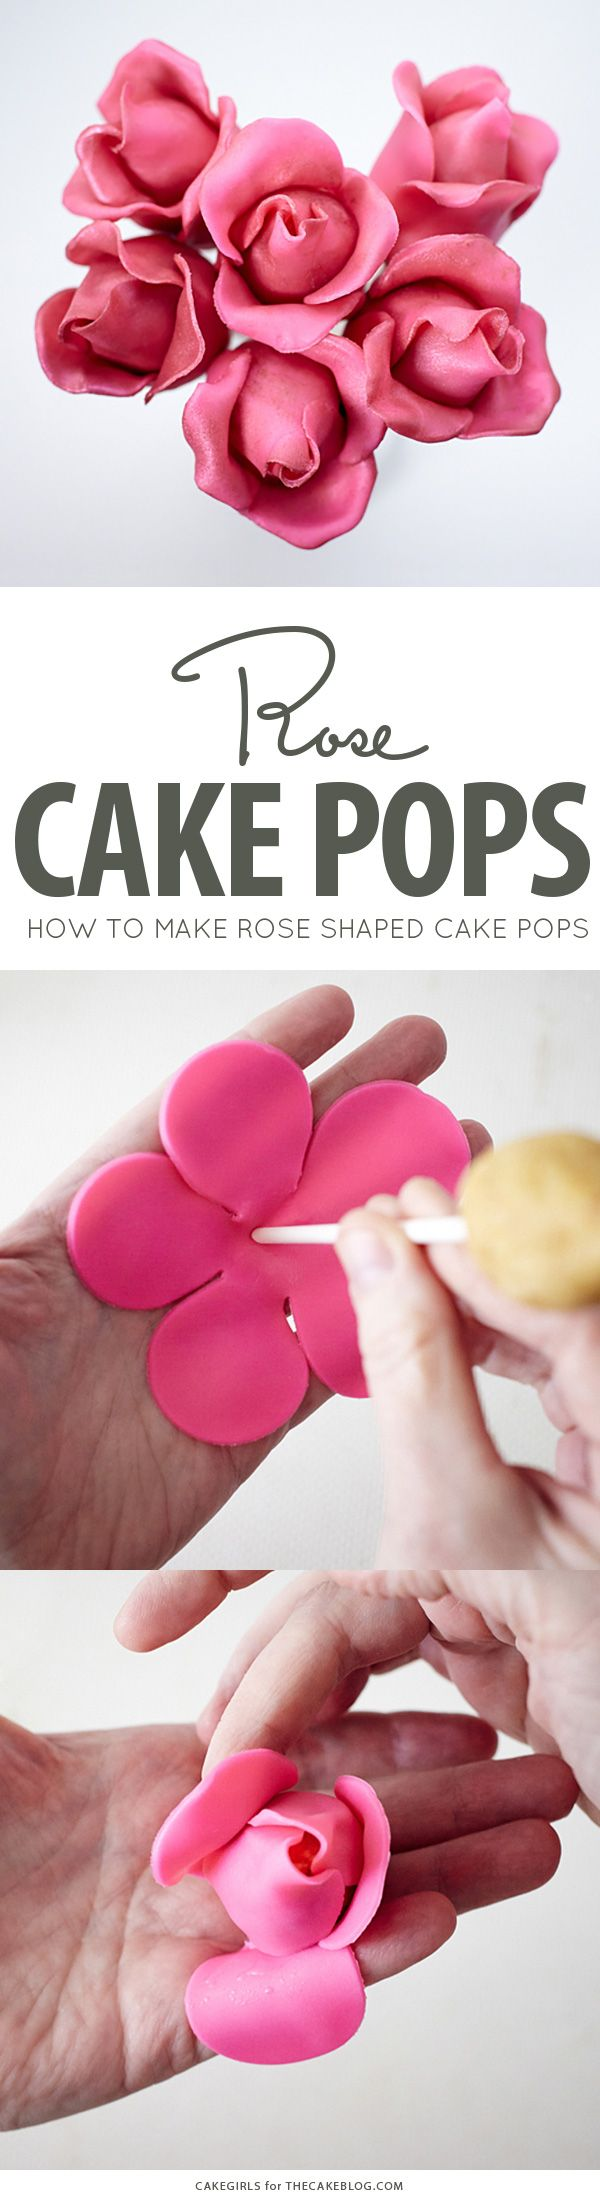 DIY Rose Cake Pops, an adorable dessert for Valentine's Day, Mother's Day and bridal showers | by Cakegirls for TheCakeBlog.com